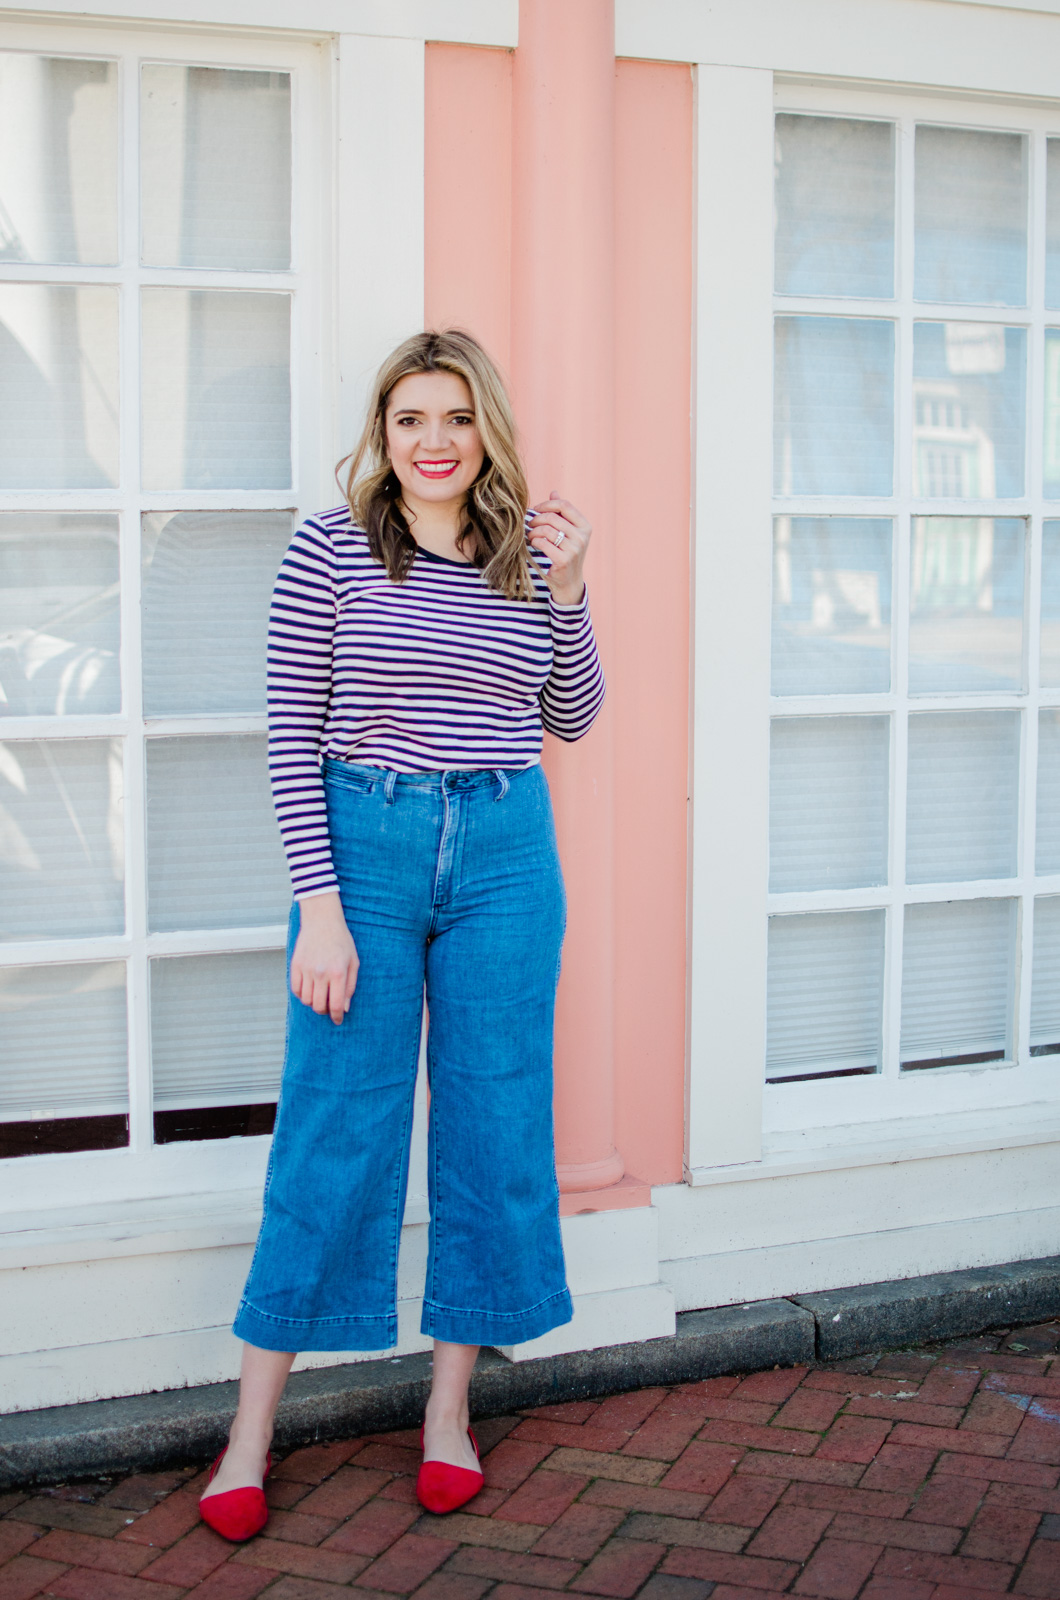 Richmond Virginia style blogger Lauren Dix shares three wide leg cropped jeans outfits for spring!